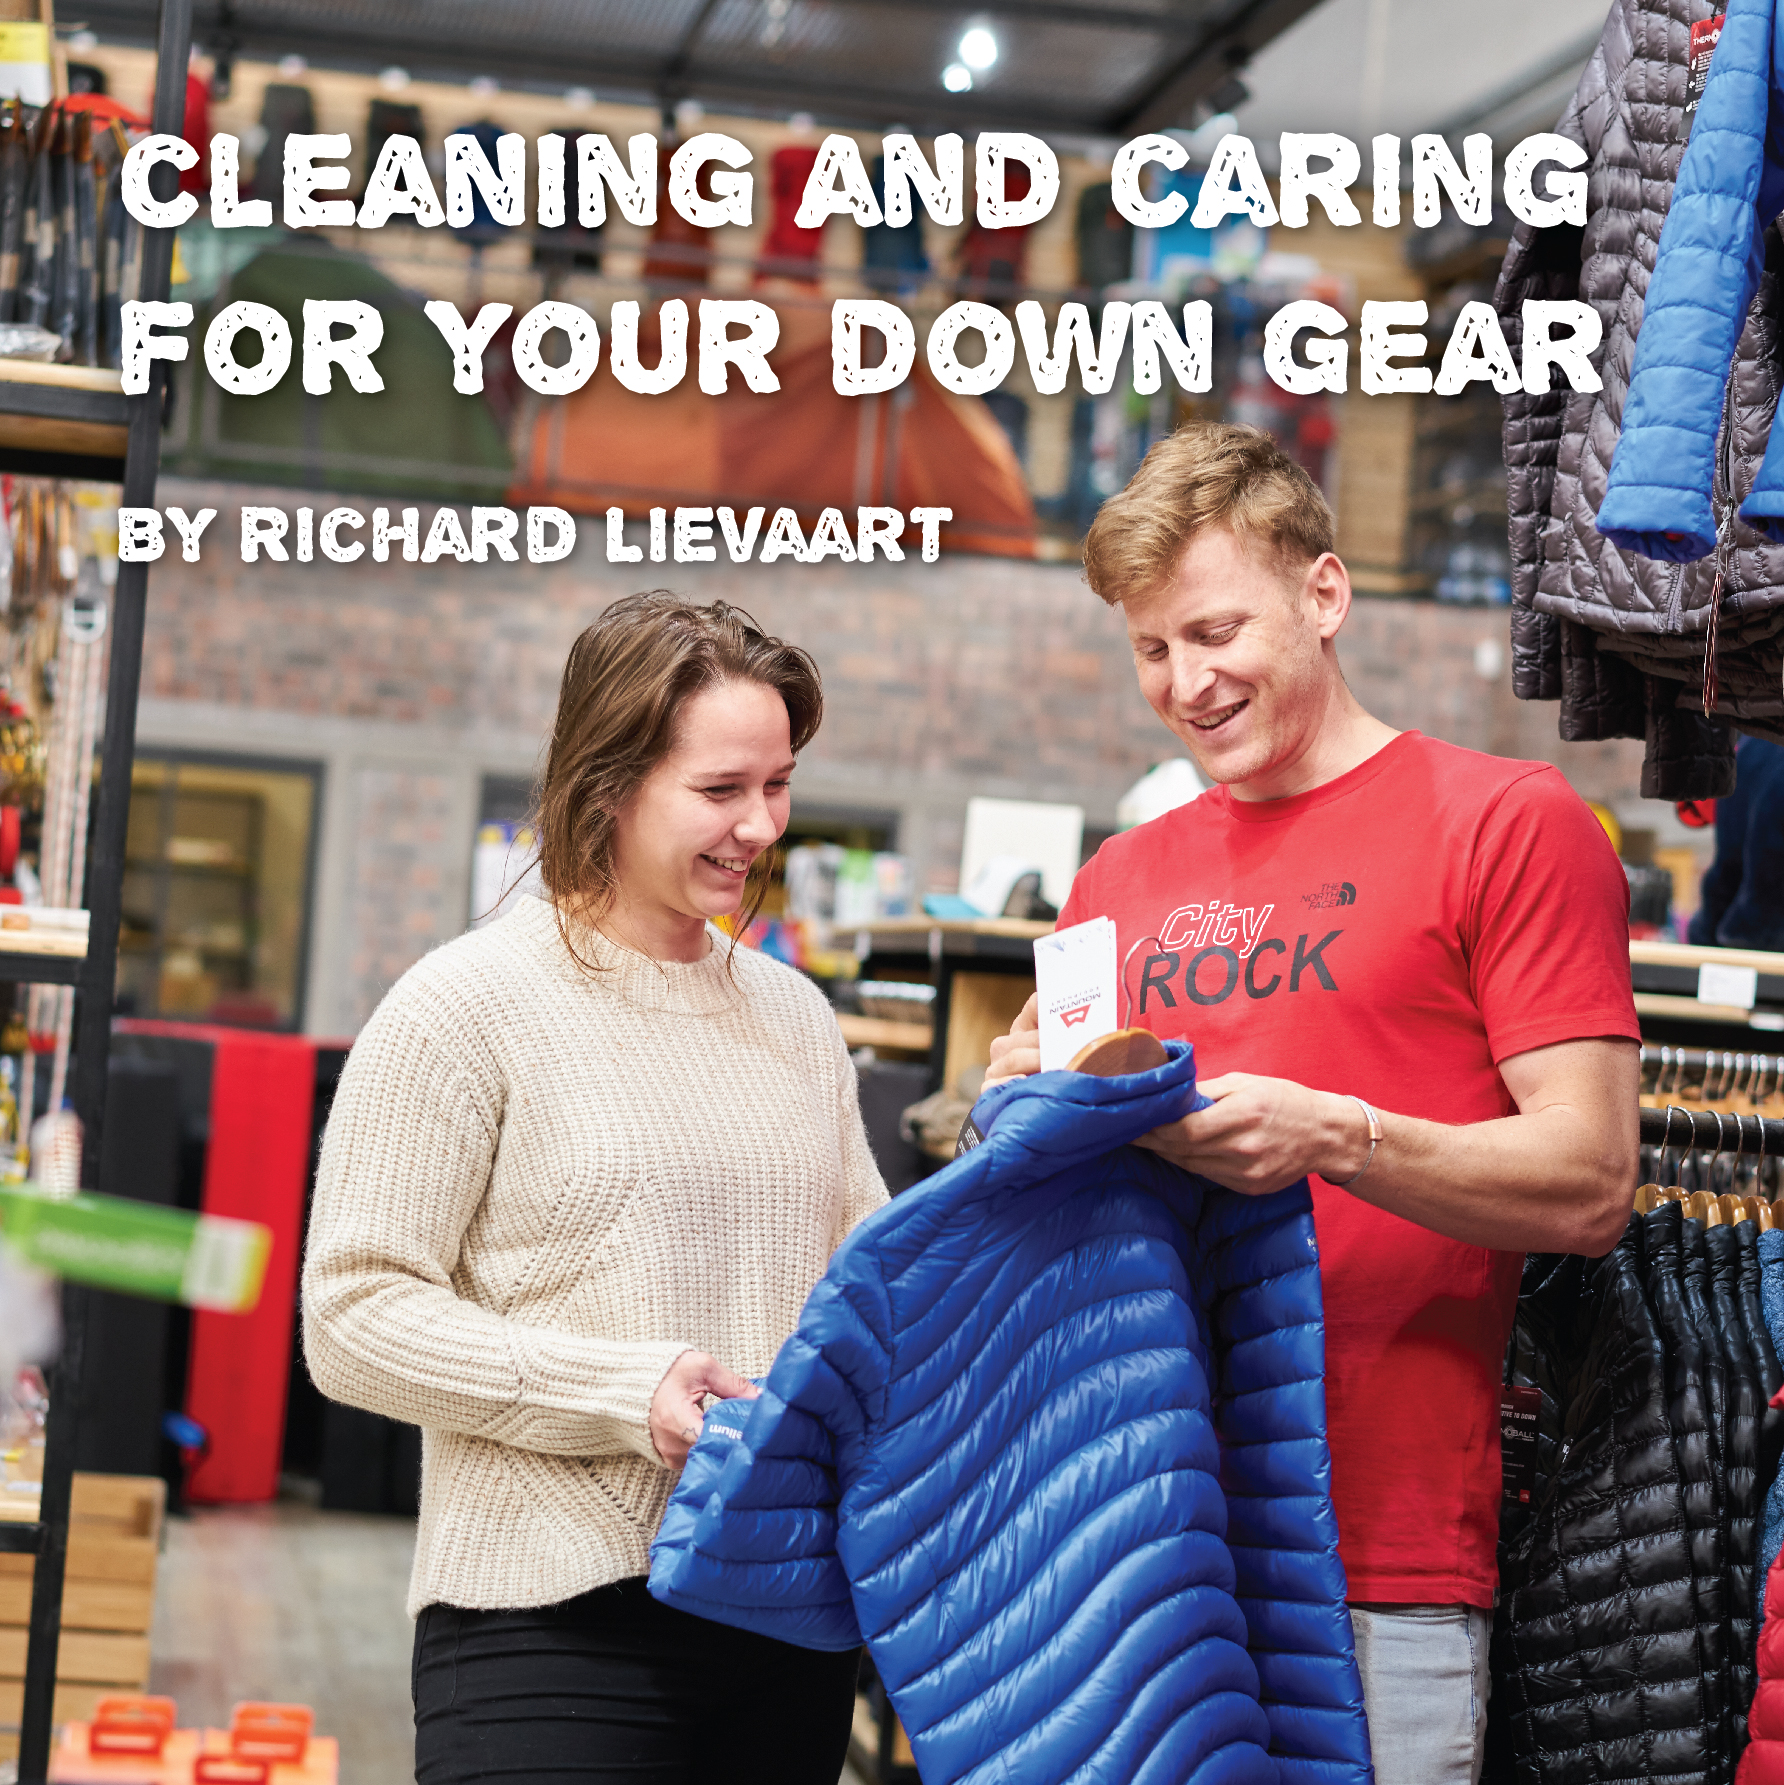 Cleaning and Caring for your down gear